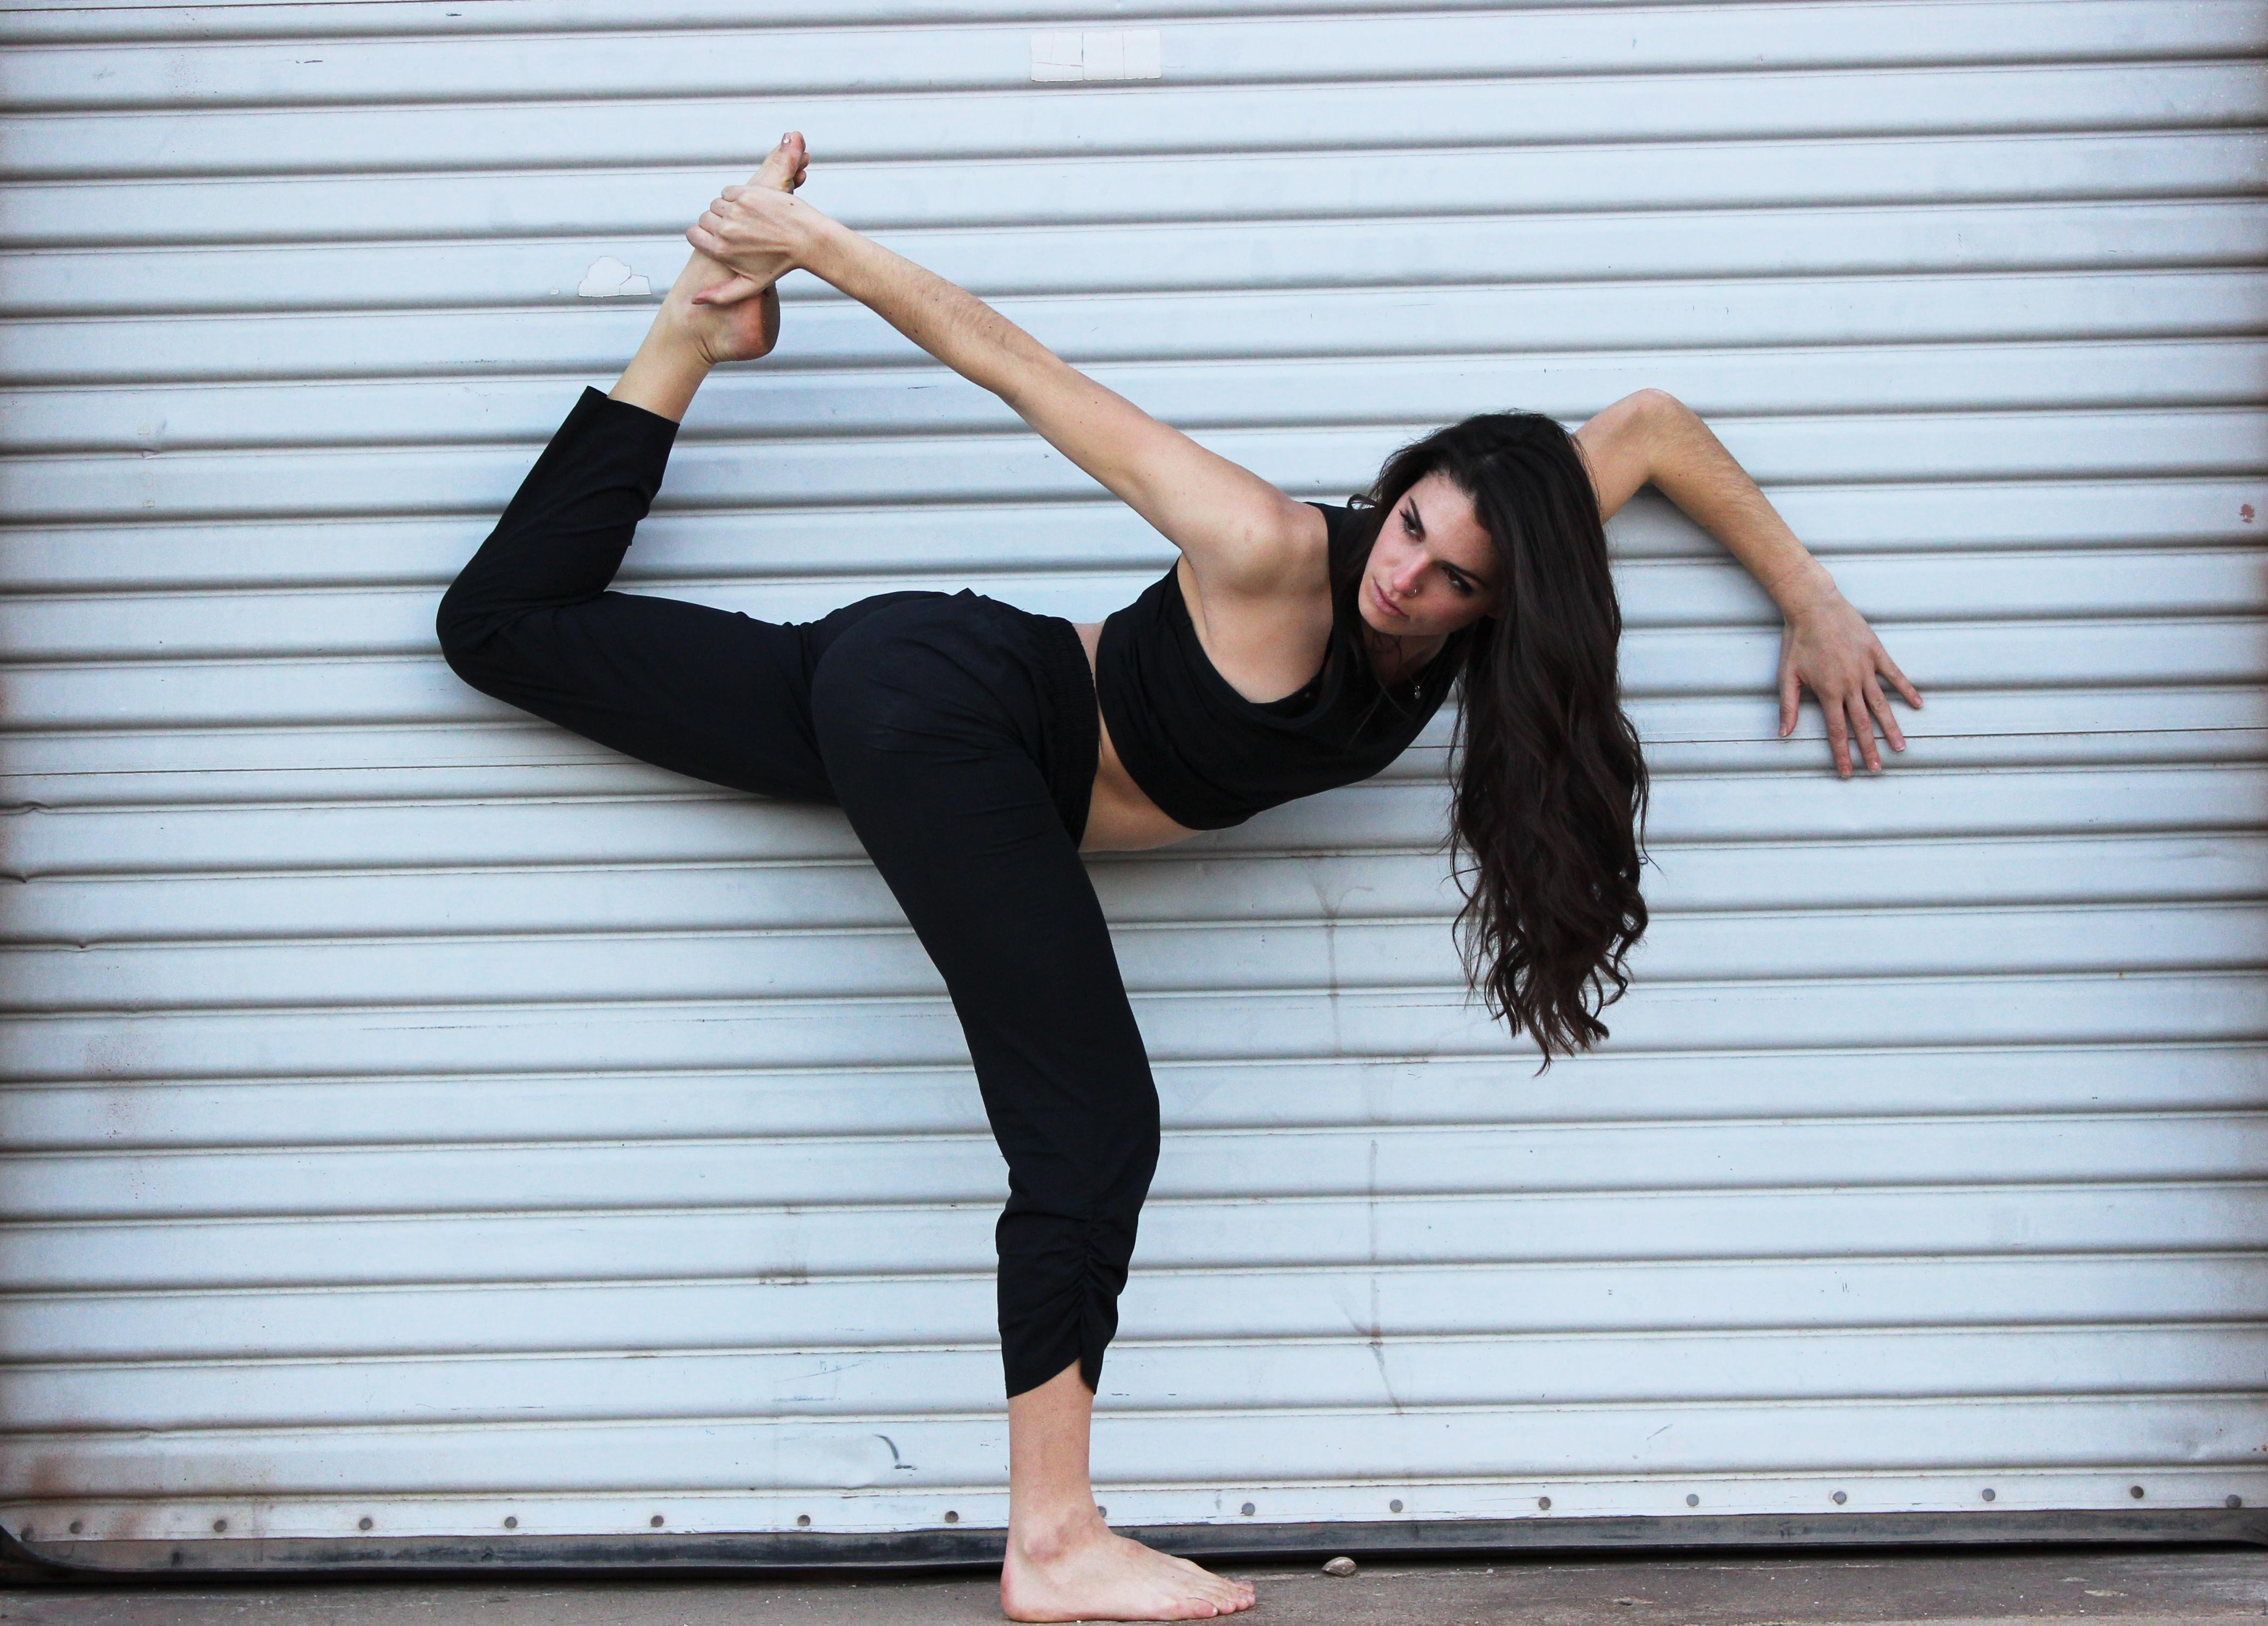 ASU Dance Student Nicky Shindler